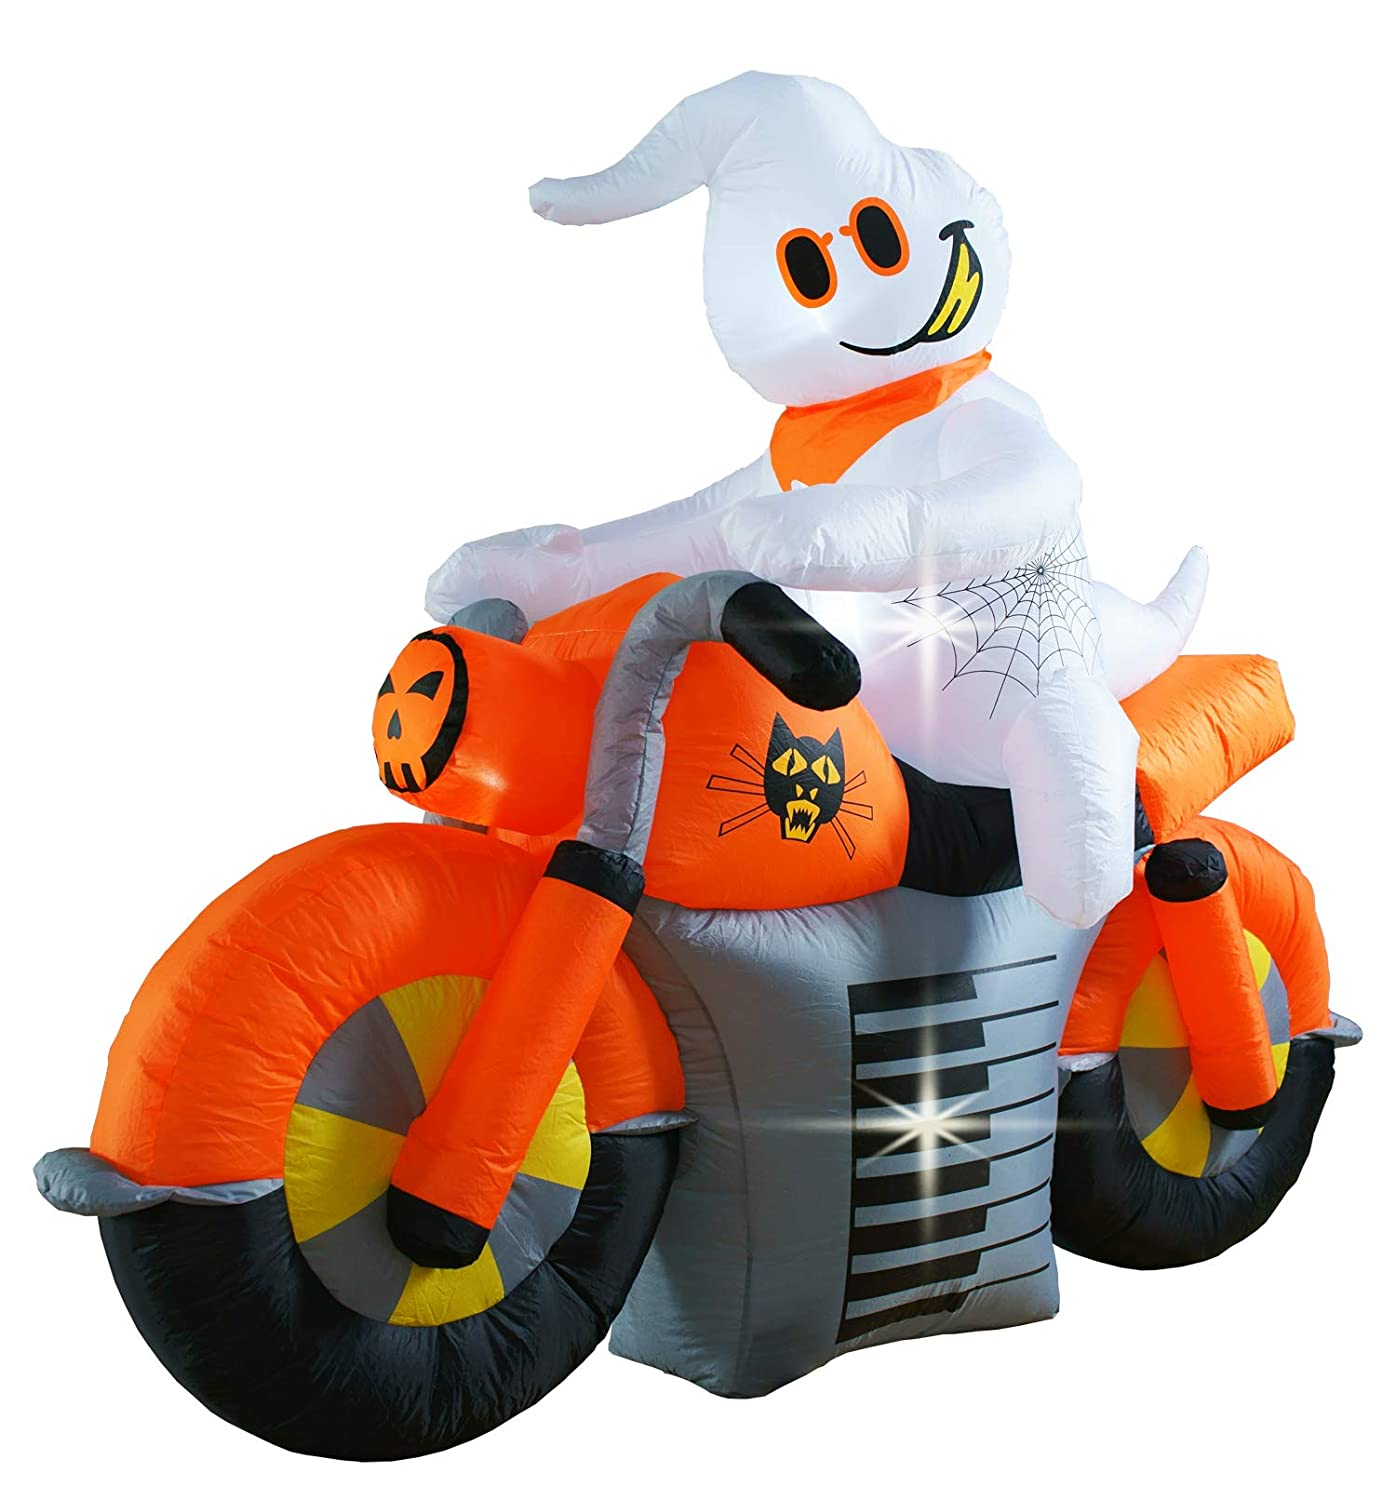 Bigjoys 7 Ft Halloween Motorcycle Decoration Inflatable Ghost Ride a Motorcycle Decorations Decor for Home Yard Lawn Garden Indoor Outdoor CHH1458-210